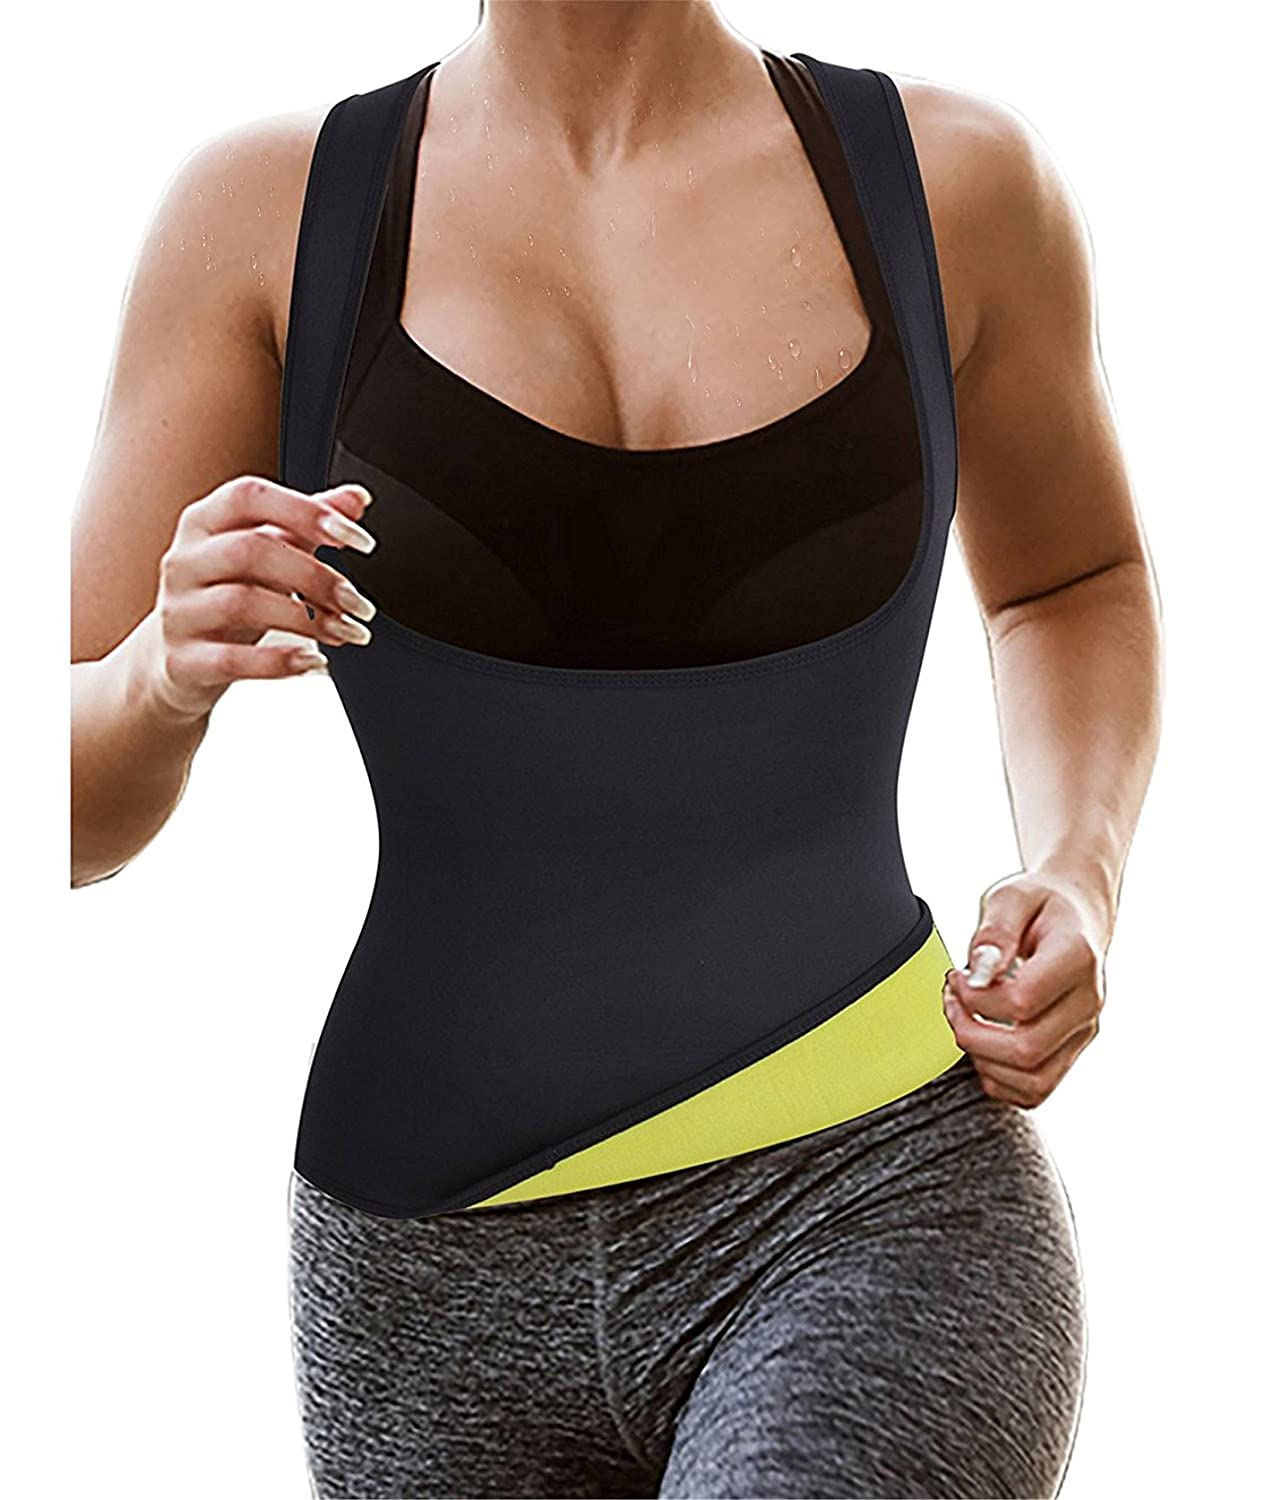 da7975469c9 Gotoly Hot Thermo Sauna Vest for Weight Loss Suit Sweat Neoprene Slimming Body  Shaper  Amazon.co.uk  Clothing